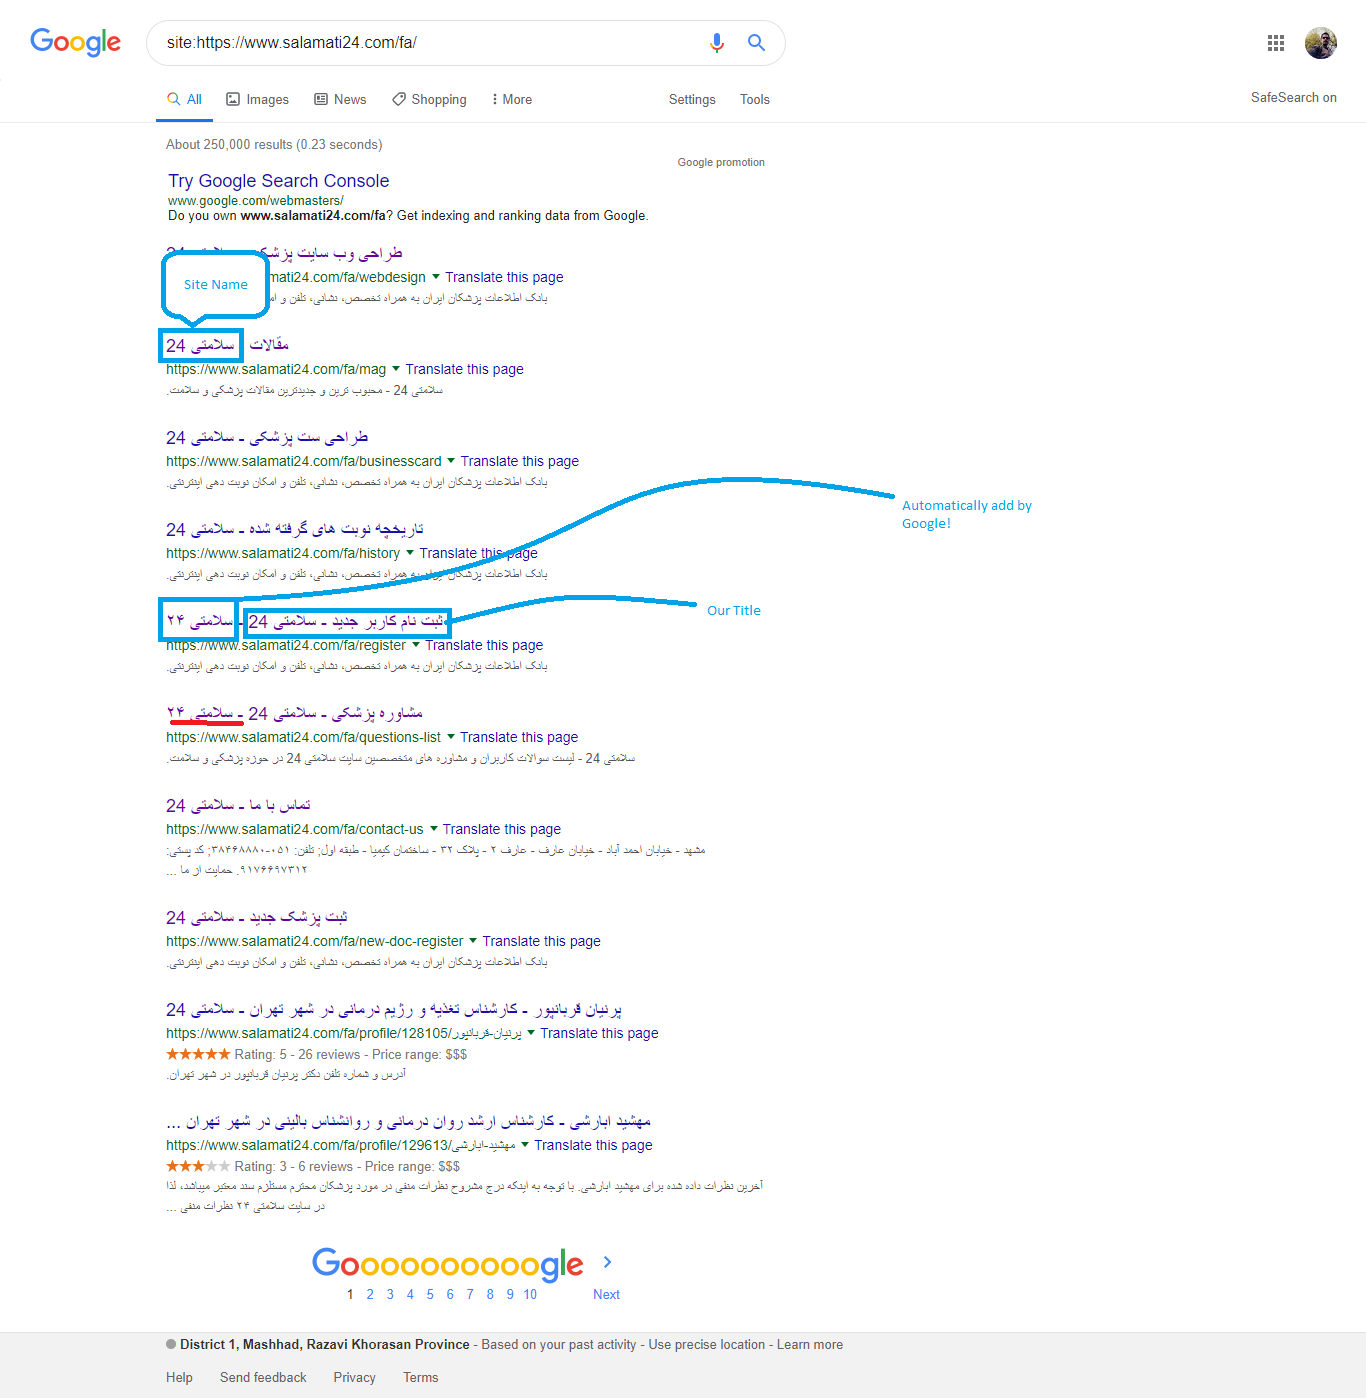 Google Duplicates my site name as a title at the end in SERP